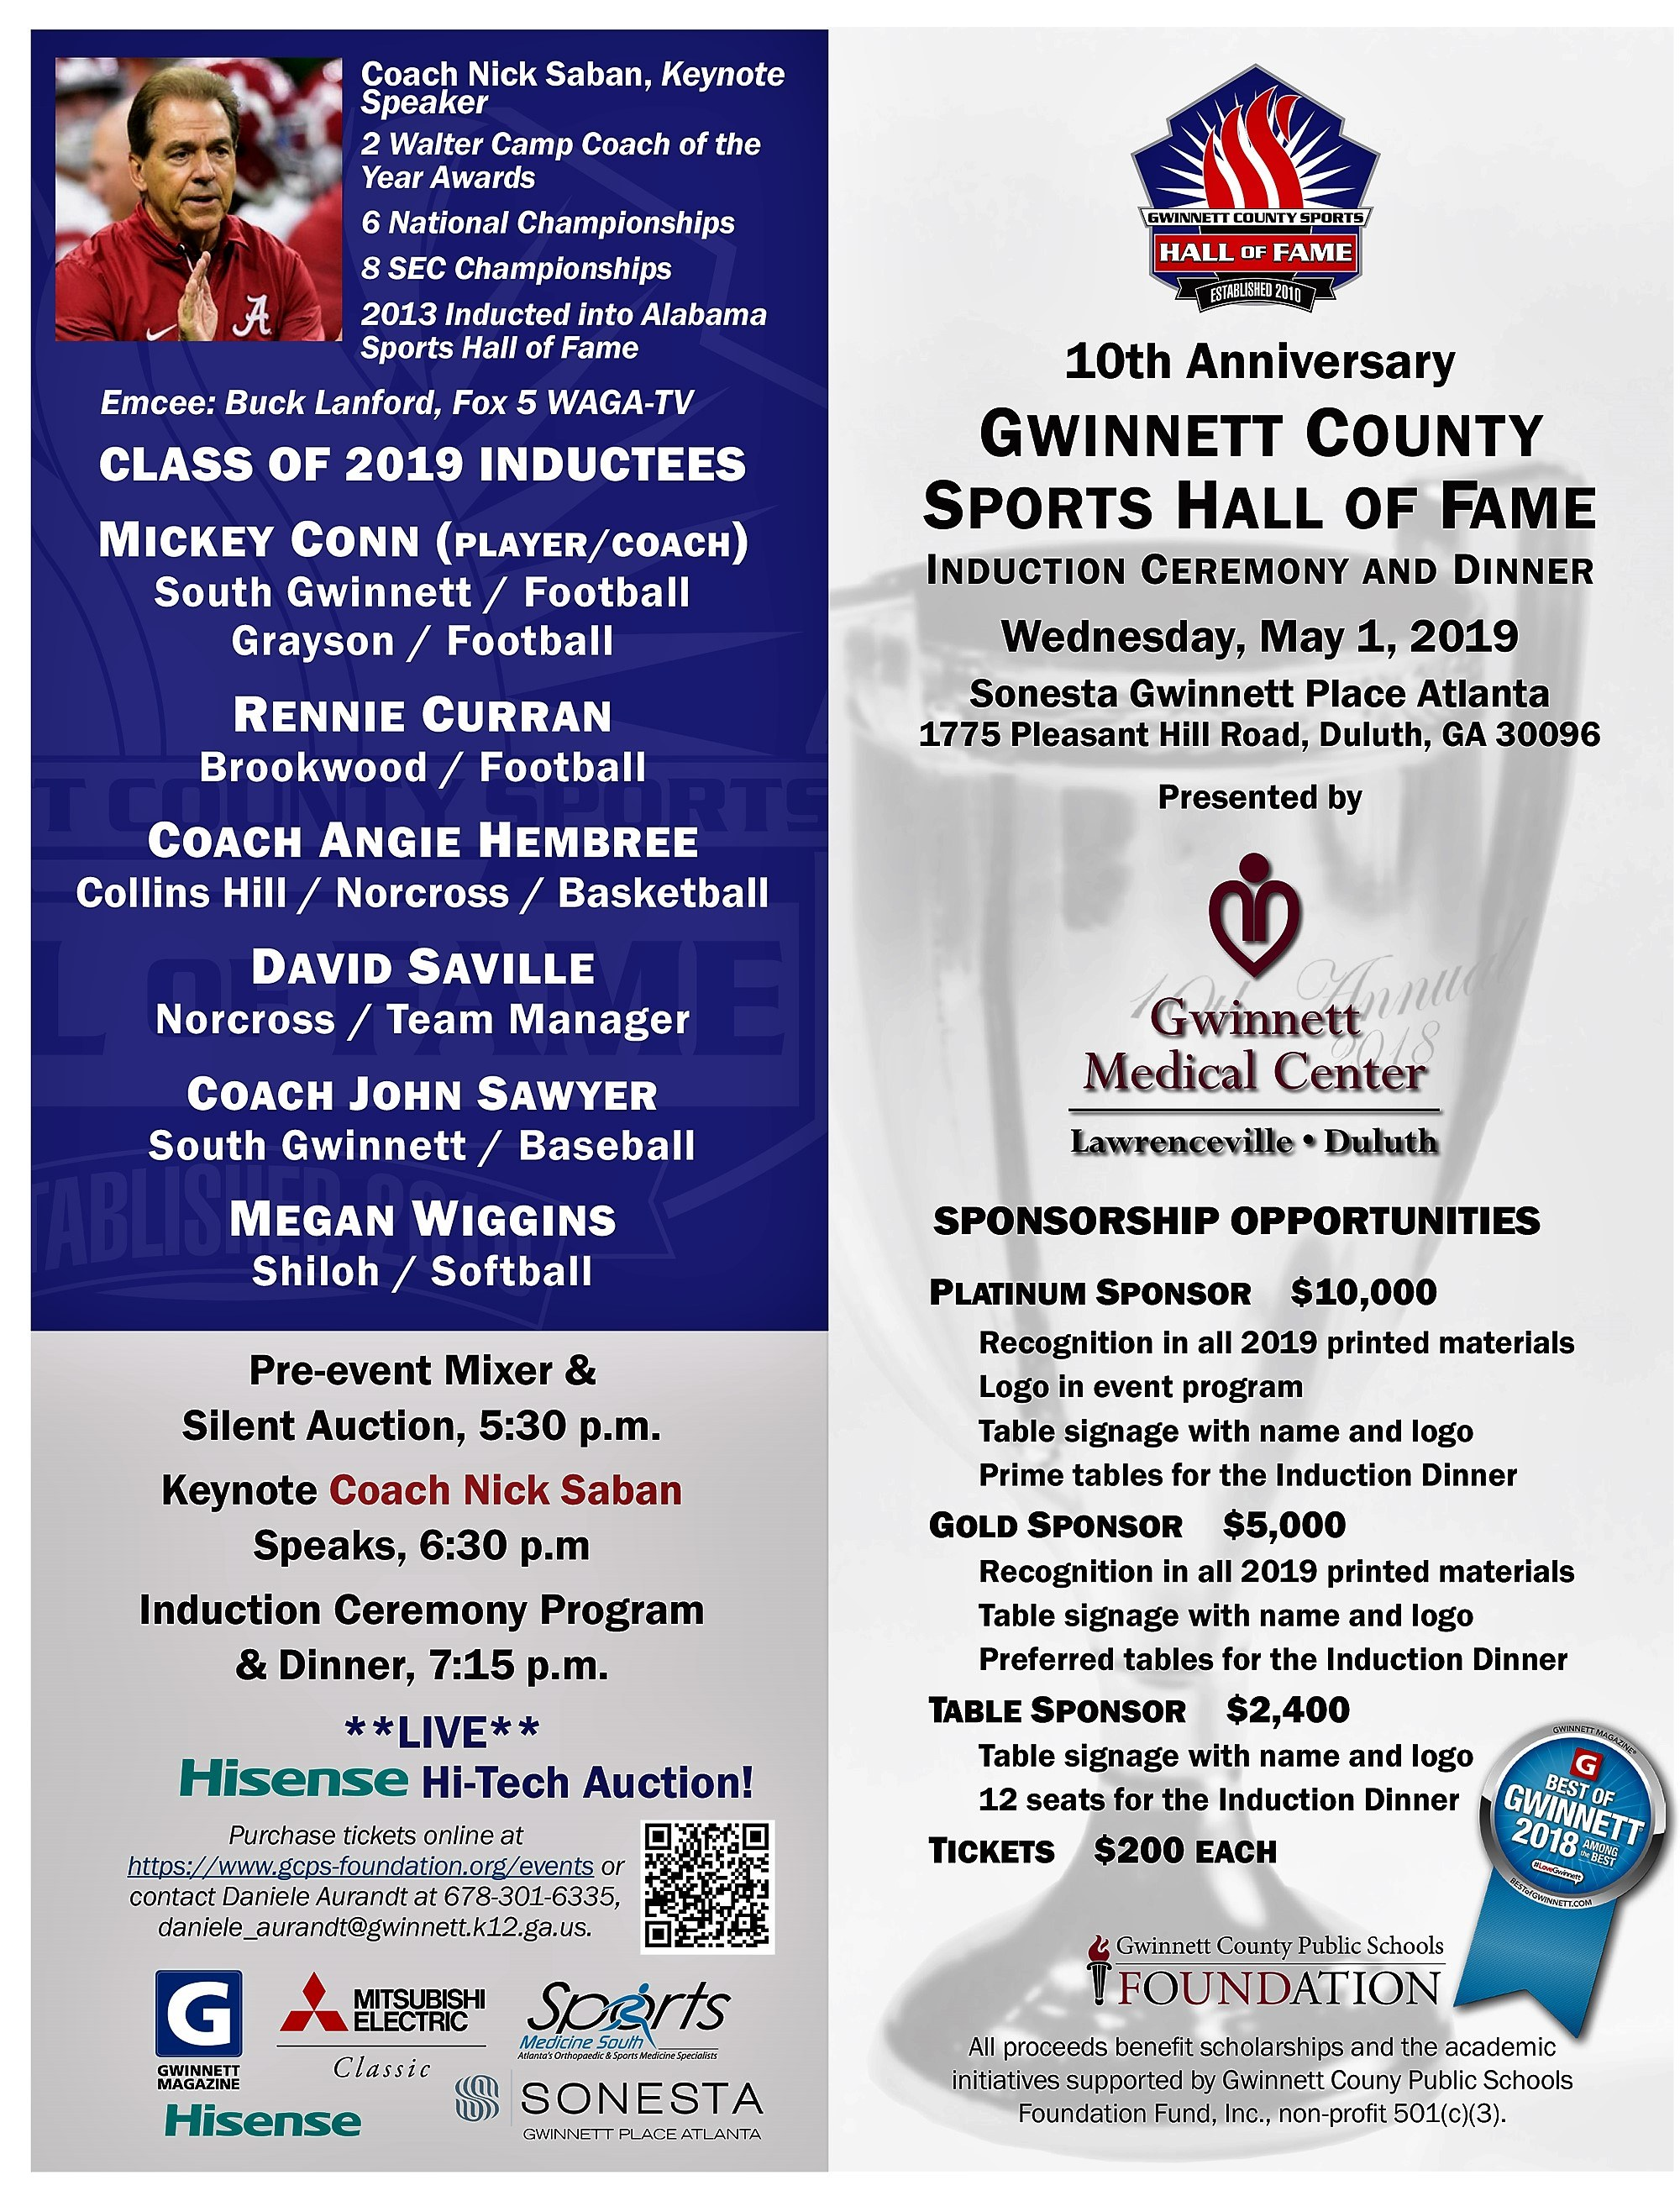 Gwinnett County Sports Hall of Fame: Former UGA and NFL